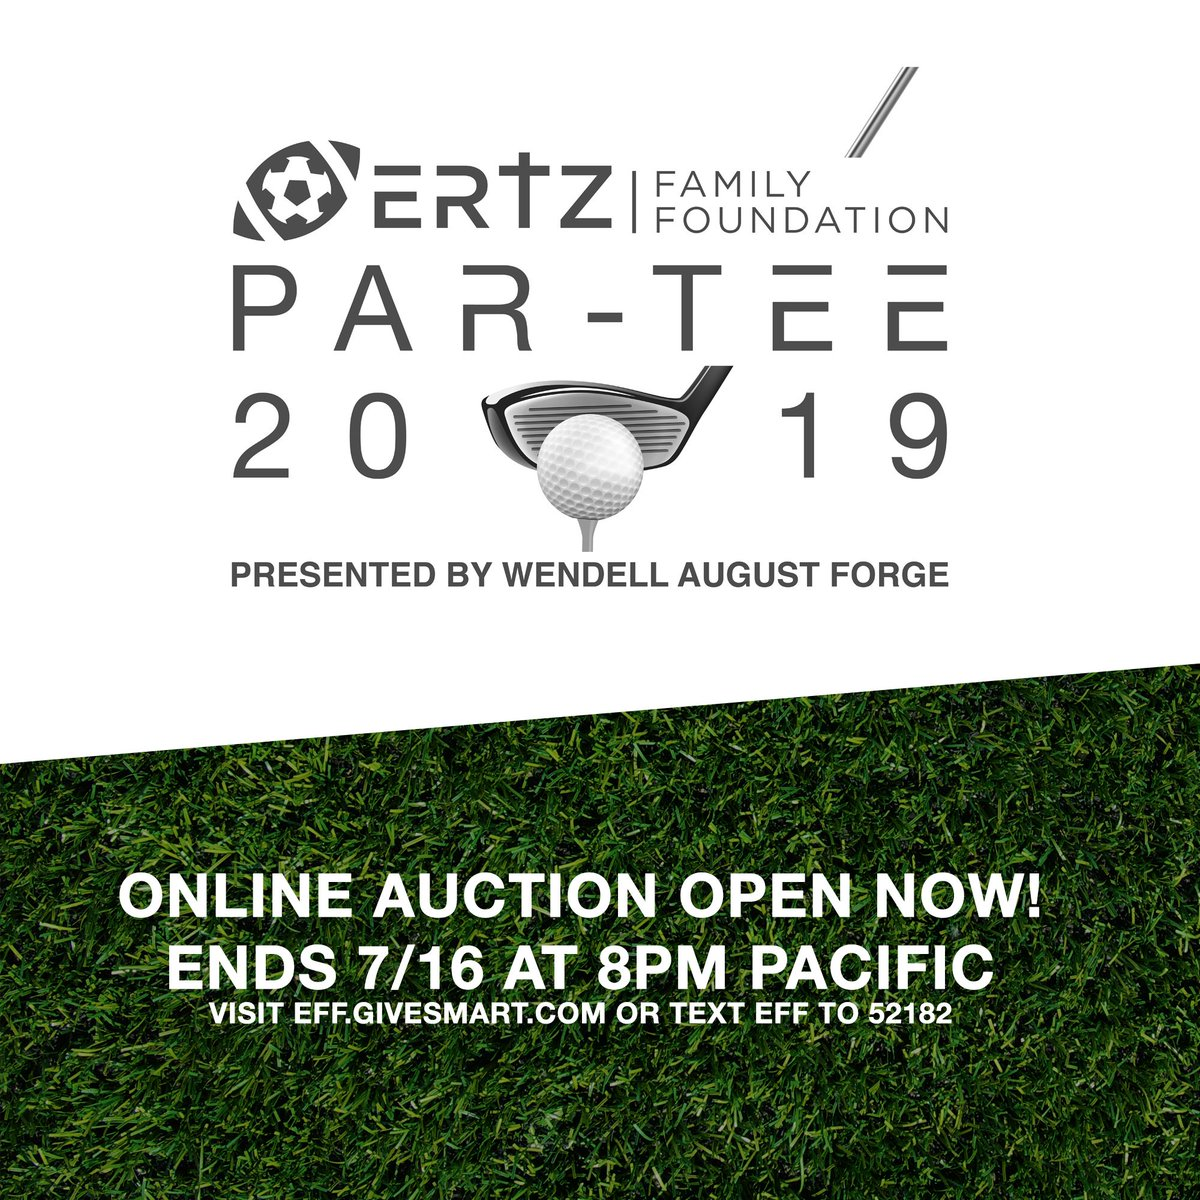 Our Ertz Family Foundation Par-Tee Golf Tournament and Reception Online Auction is Open Now! Bid on one-of-a-kind memorabilia and experiences -- all benefiting the #ErtzFamilyFoundation. Auction Ends 7/16 at 8pm Pacific. Visit EFF.givesmart.com or text EFF to 52182.